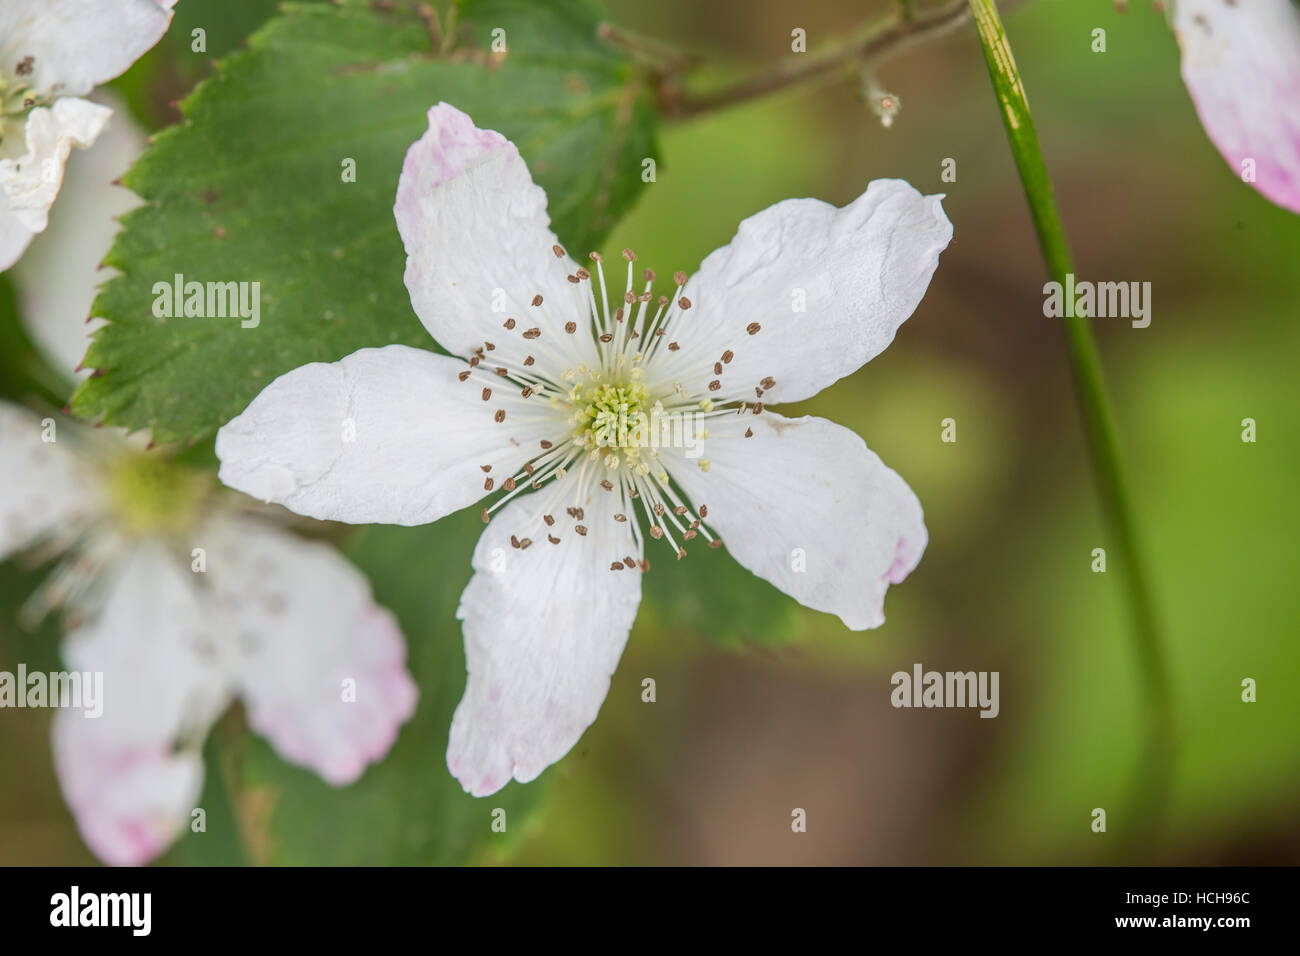 White Flower With Five Petals In Star Shape Showing Stamen And A